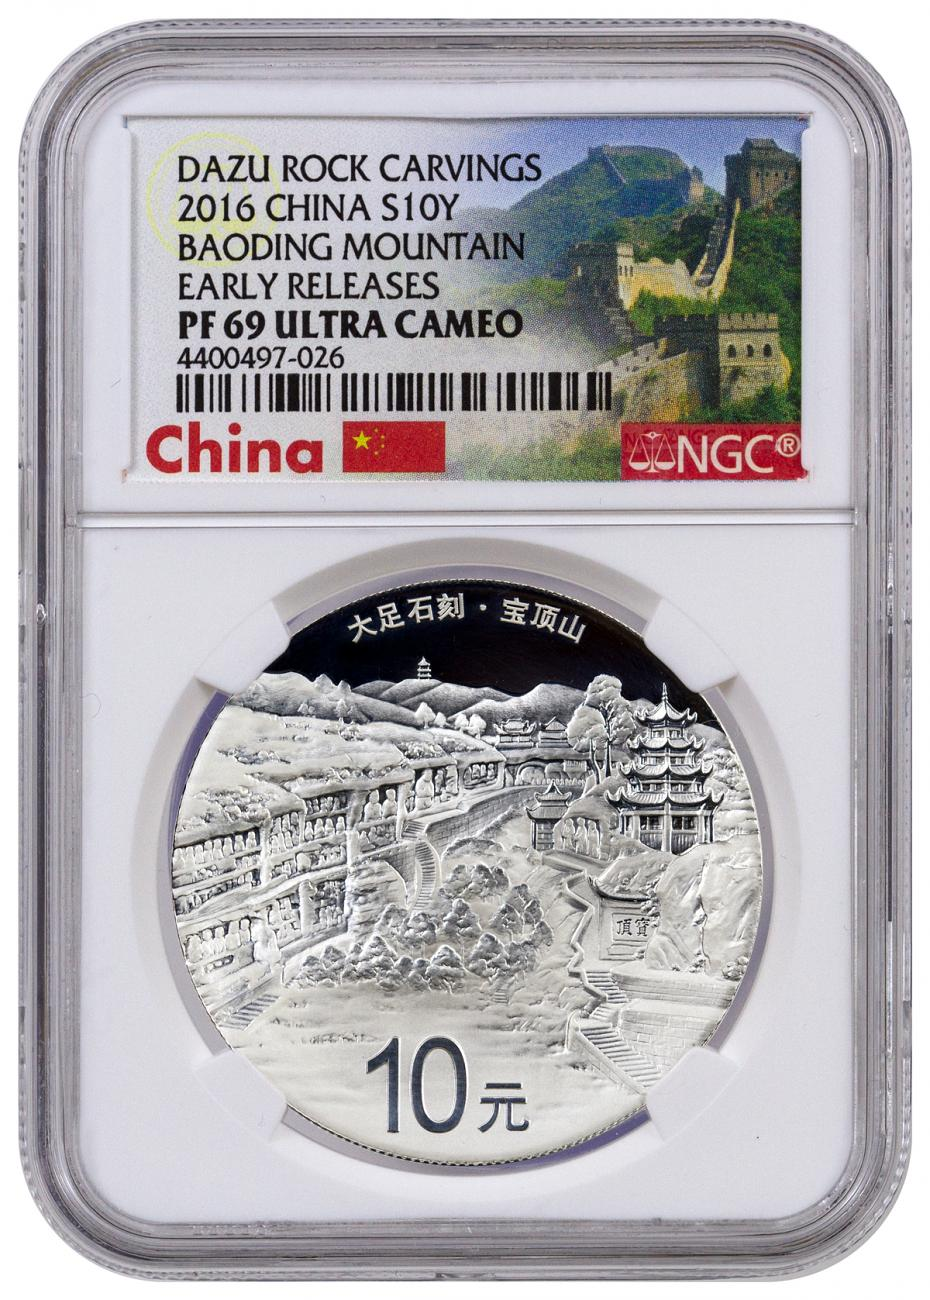 2016 China 10 Yuan 30g Proof Silver Dazu Rock Carvings - NGC PF69 UC Early Releases (Exclusive Great Wall Label)